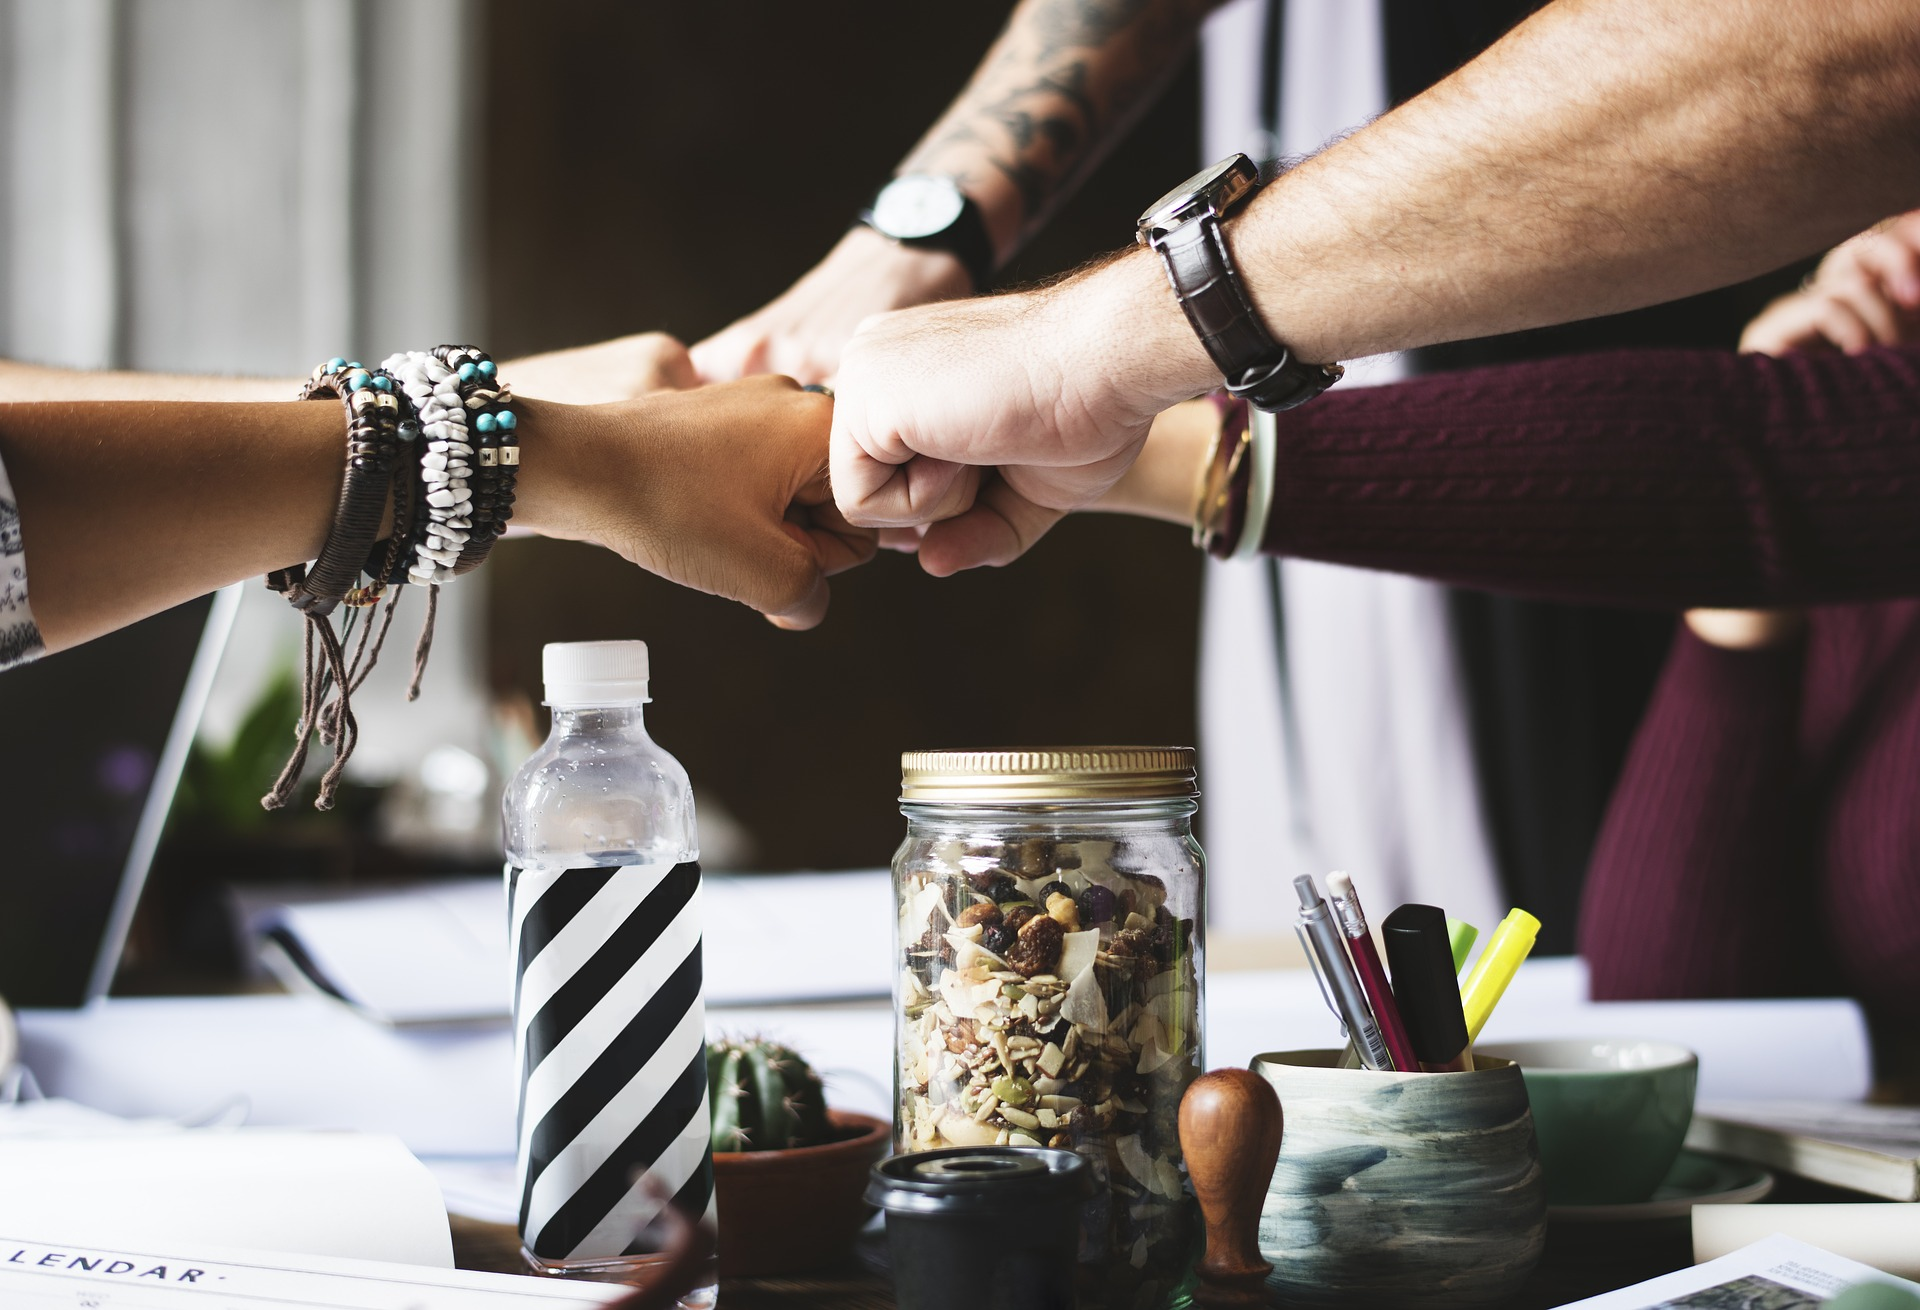 Having A Work Bestie Makes You Better At Your Job, Research Says action 2277292 1920